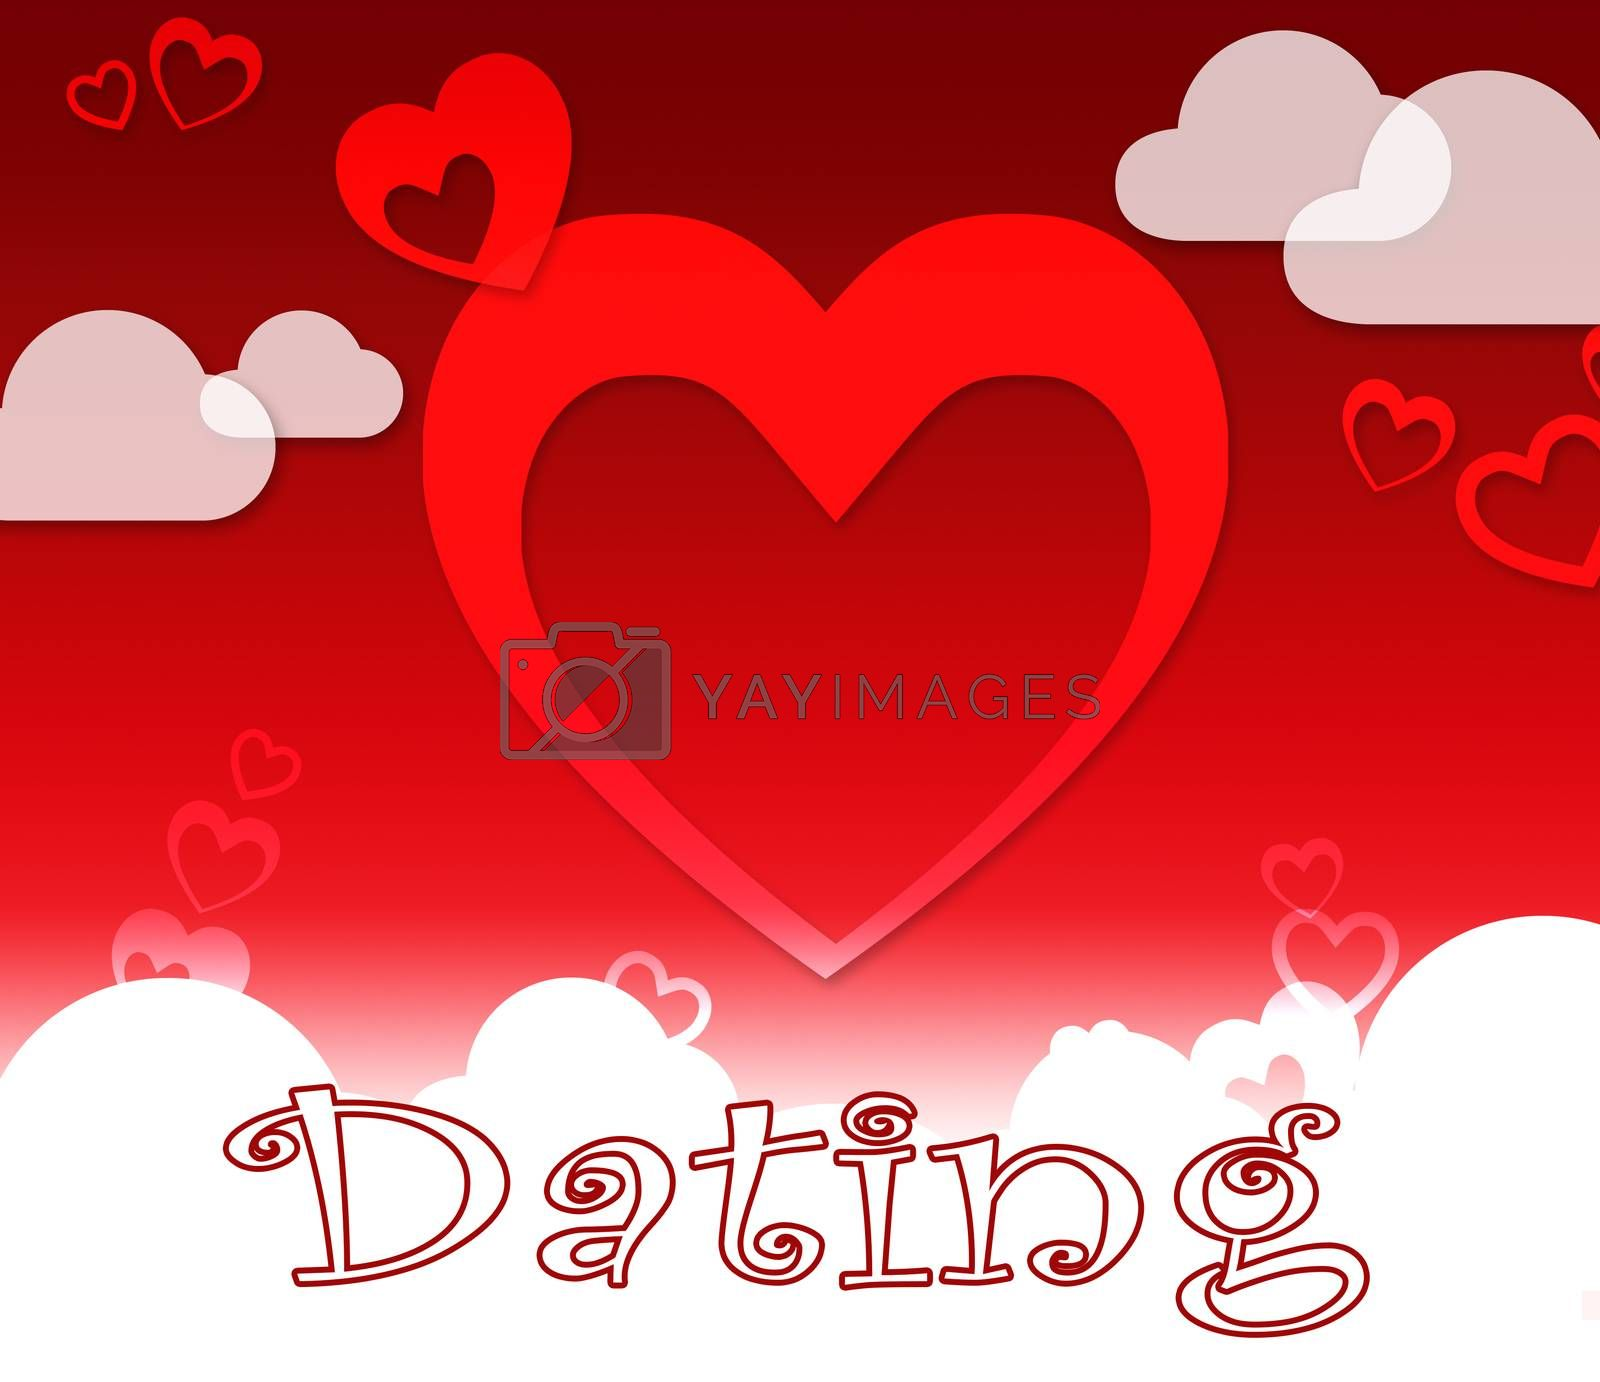 Dating Hearts Indicating Sweetheart Partner And Relationships